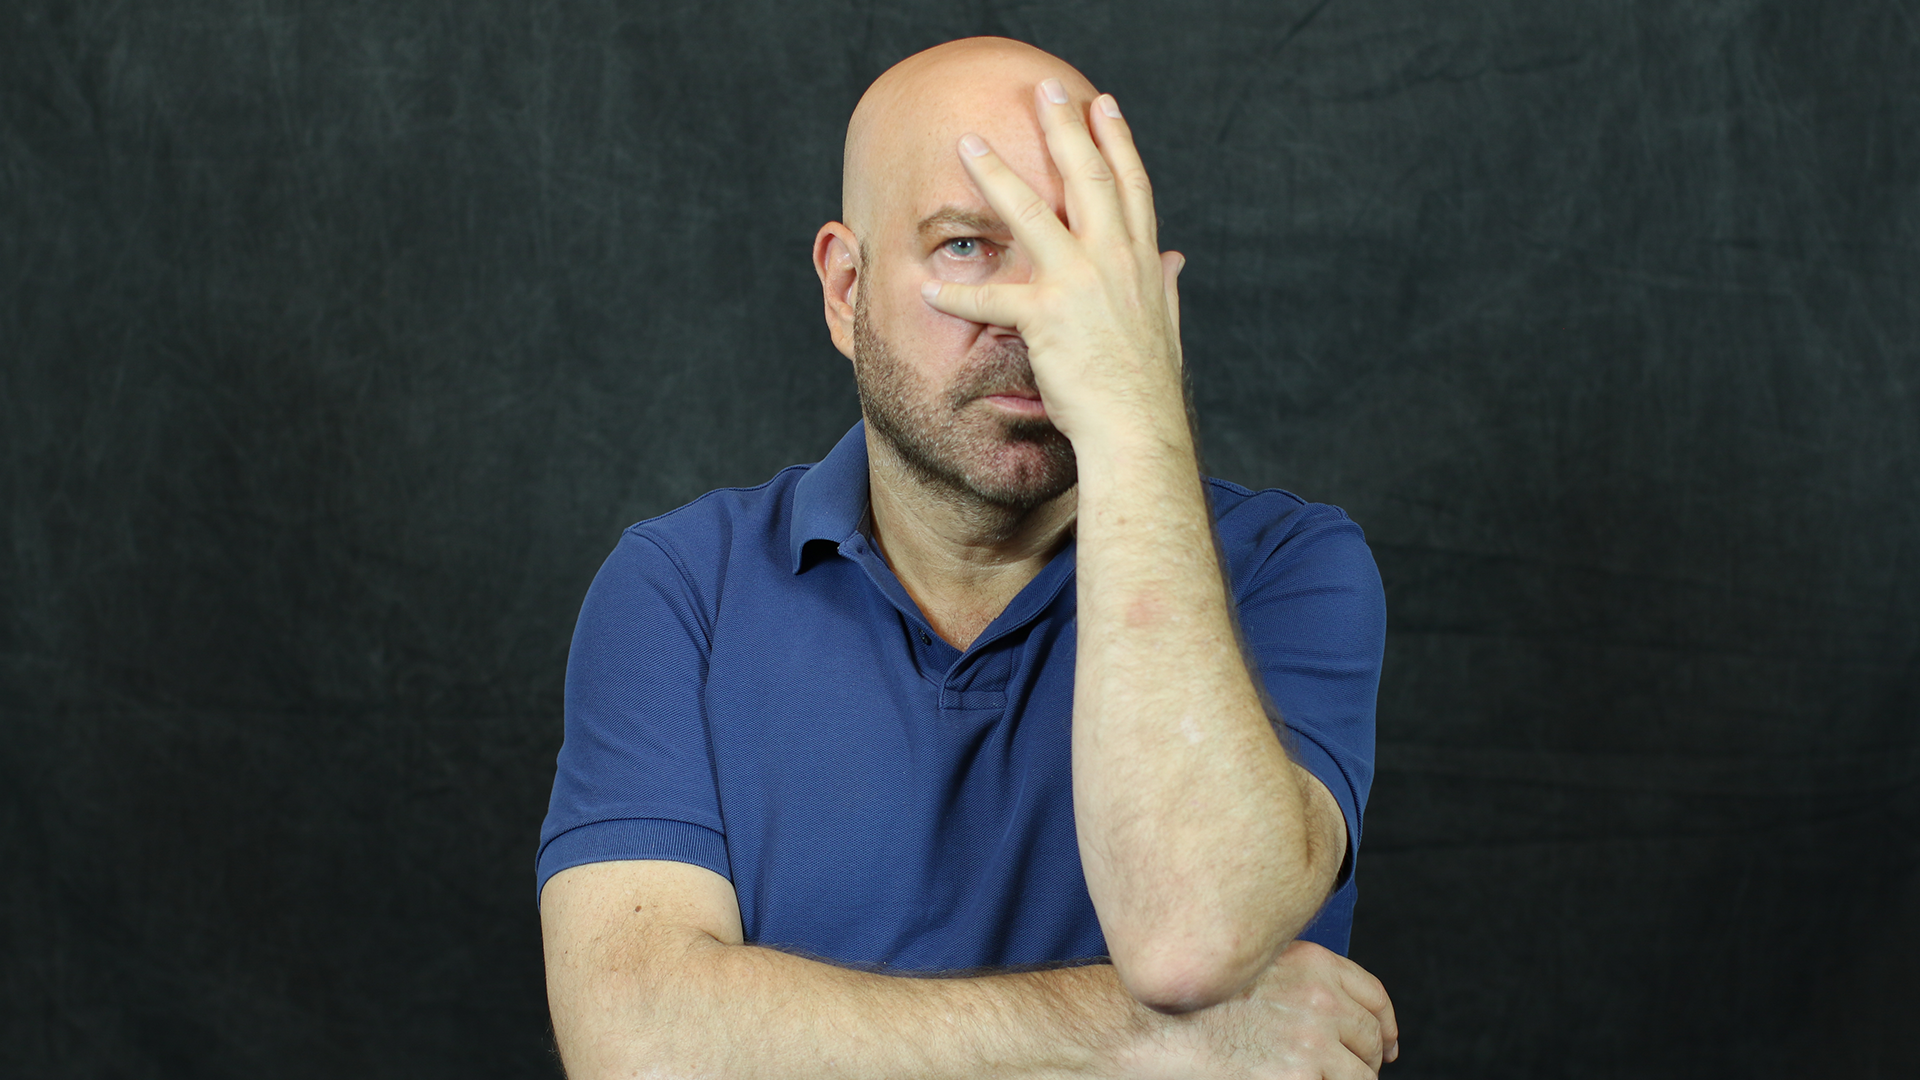 Jason Stuart: When You Come From a Family That's Very Dysfunctional — Photo Credit: Shefik